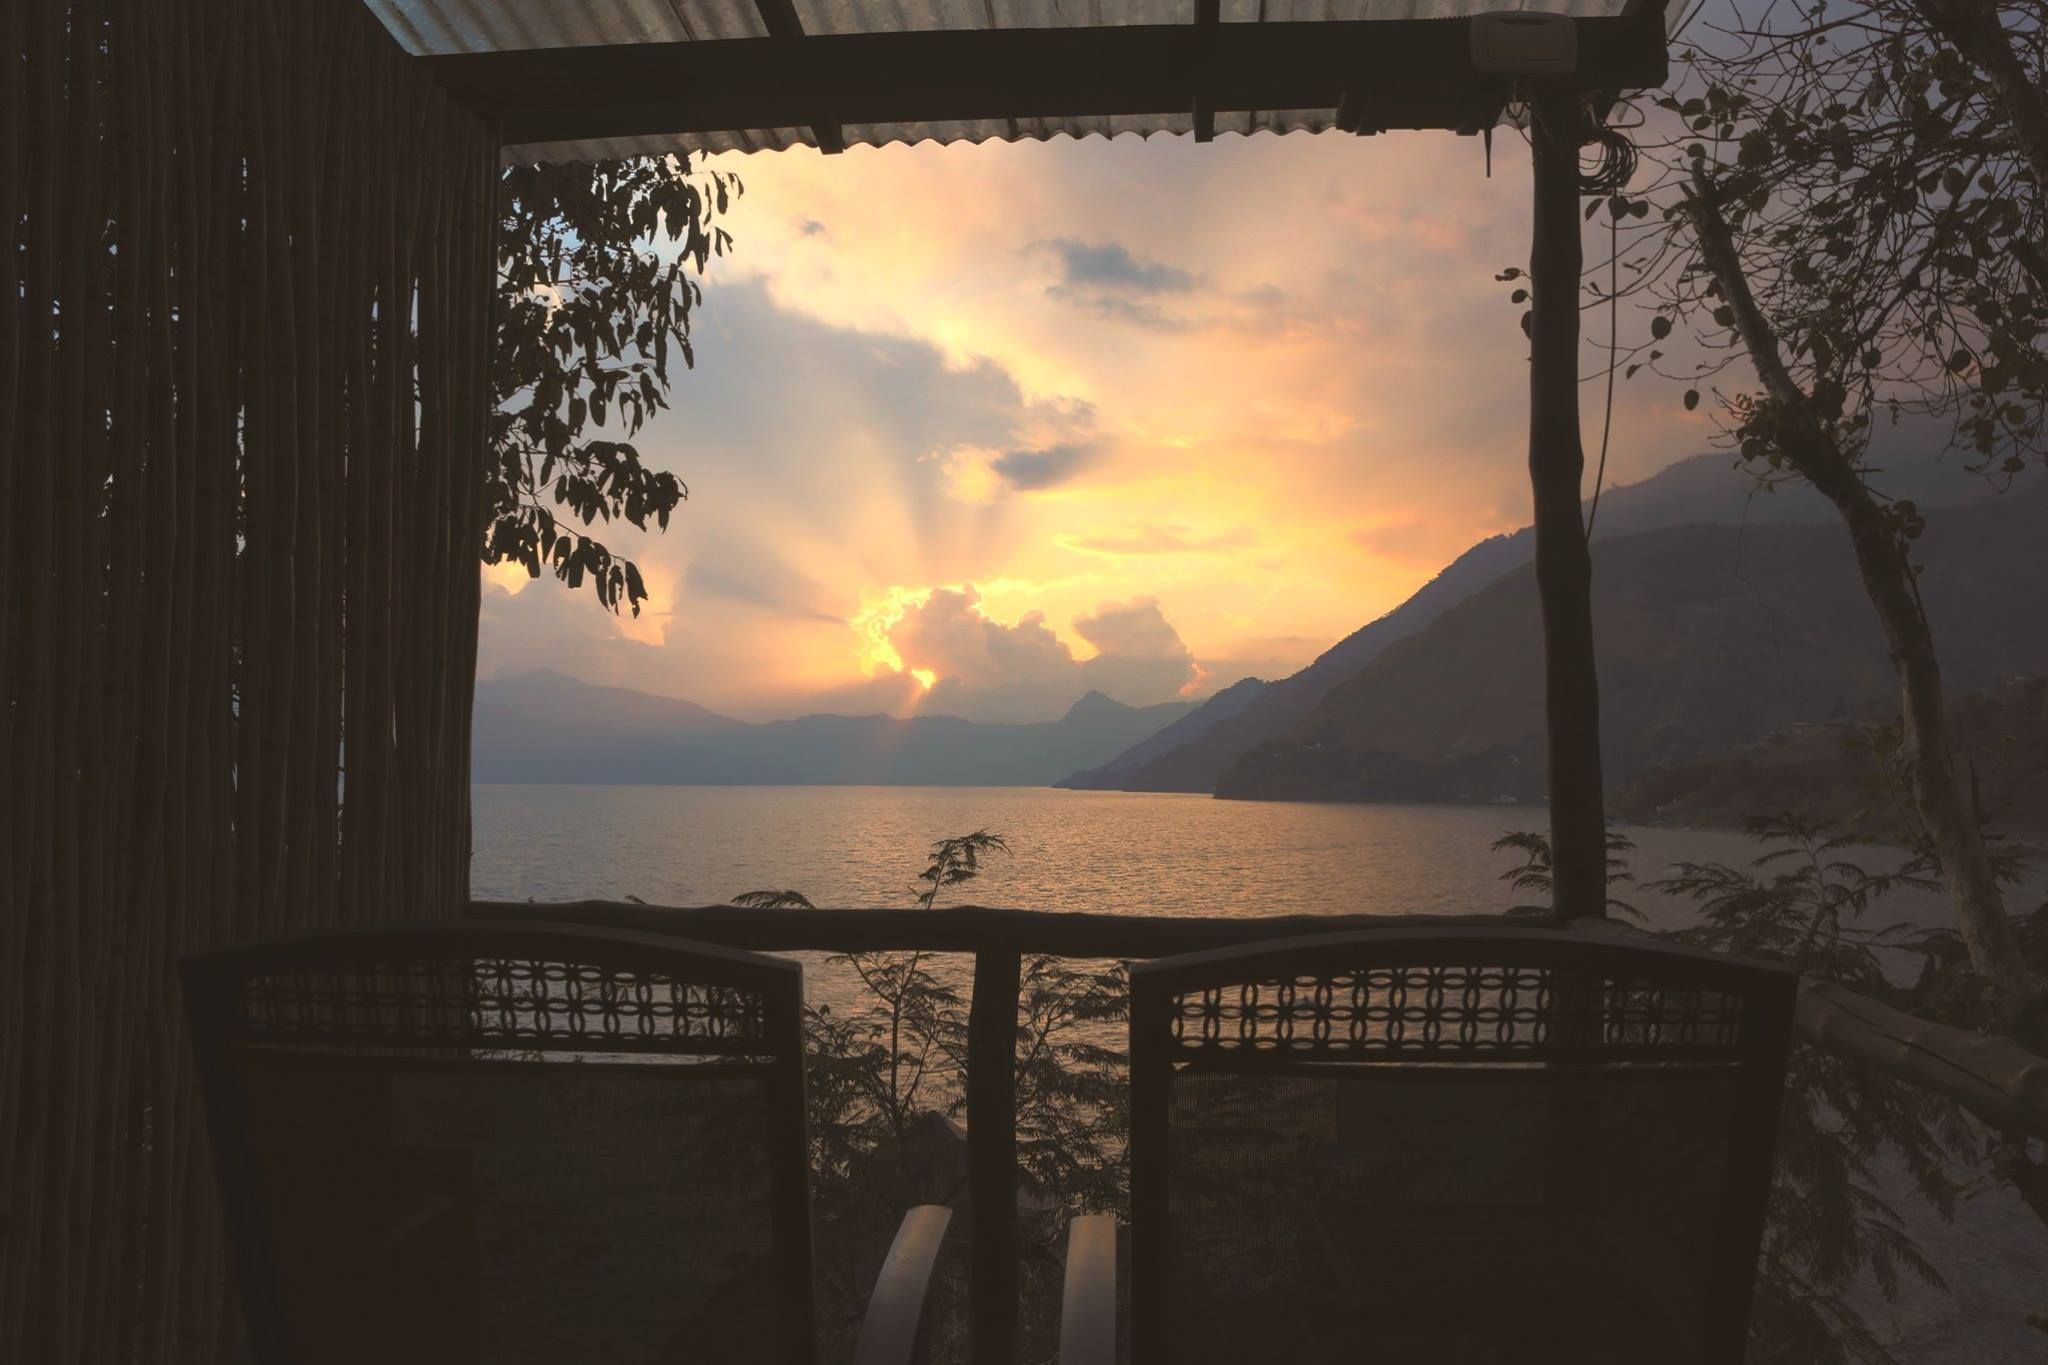 Orange sunset behind clouds, from a wooden balcony overlooking Lake Atitlan